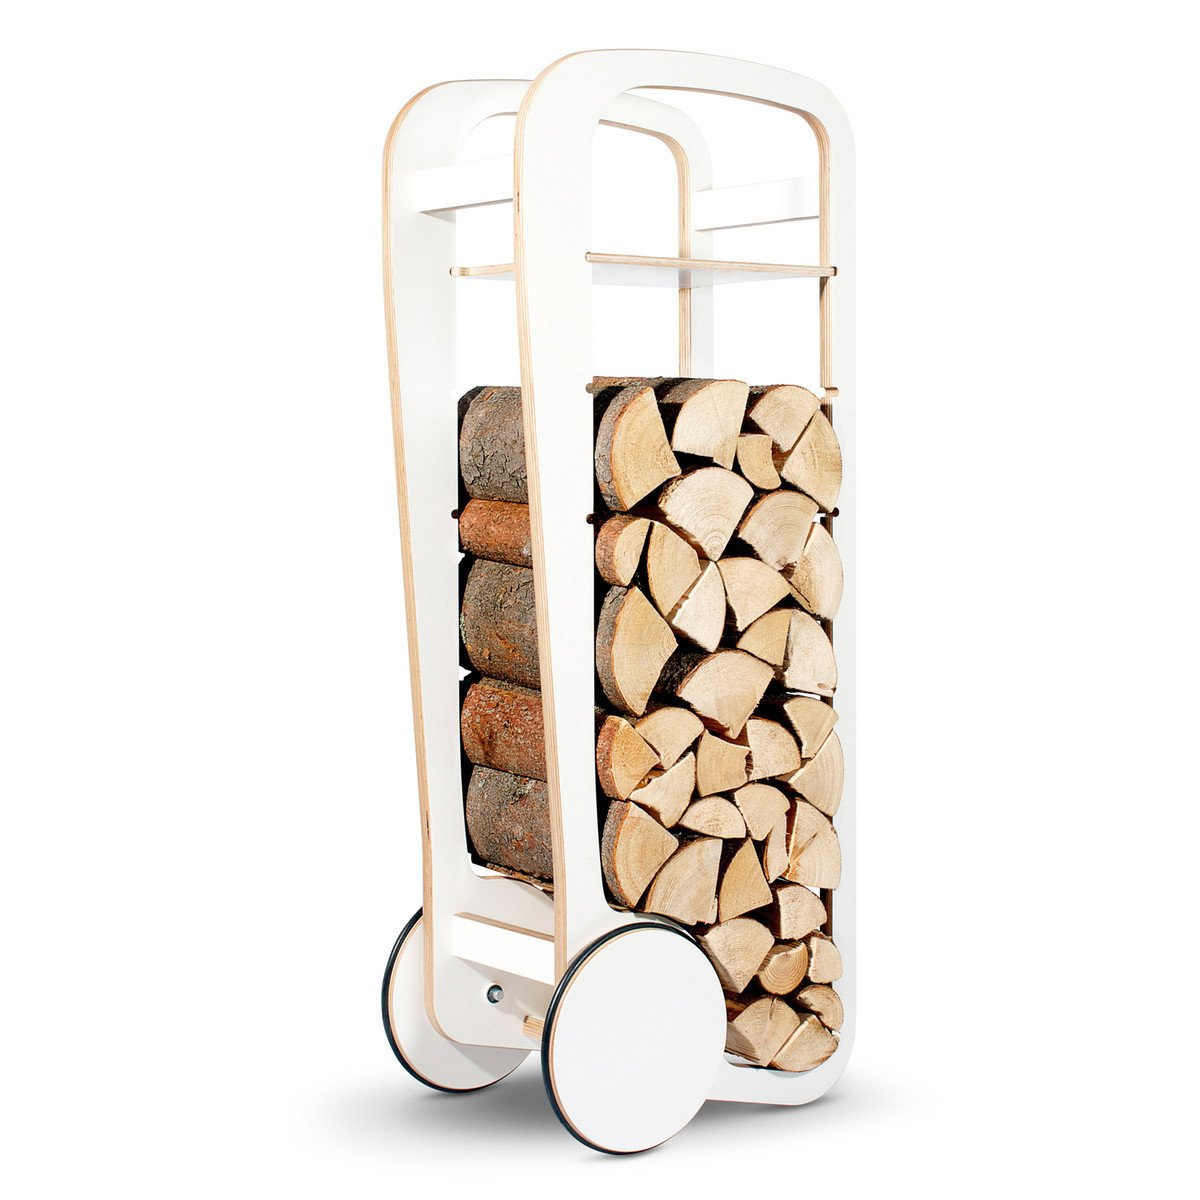 The Fleimio Wood Trolley, about $600 from connox.com, is made of laminated birch and features wheels to make transporting wood from outside easier.  Creative Ways to Store Firewood by Diana Budds